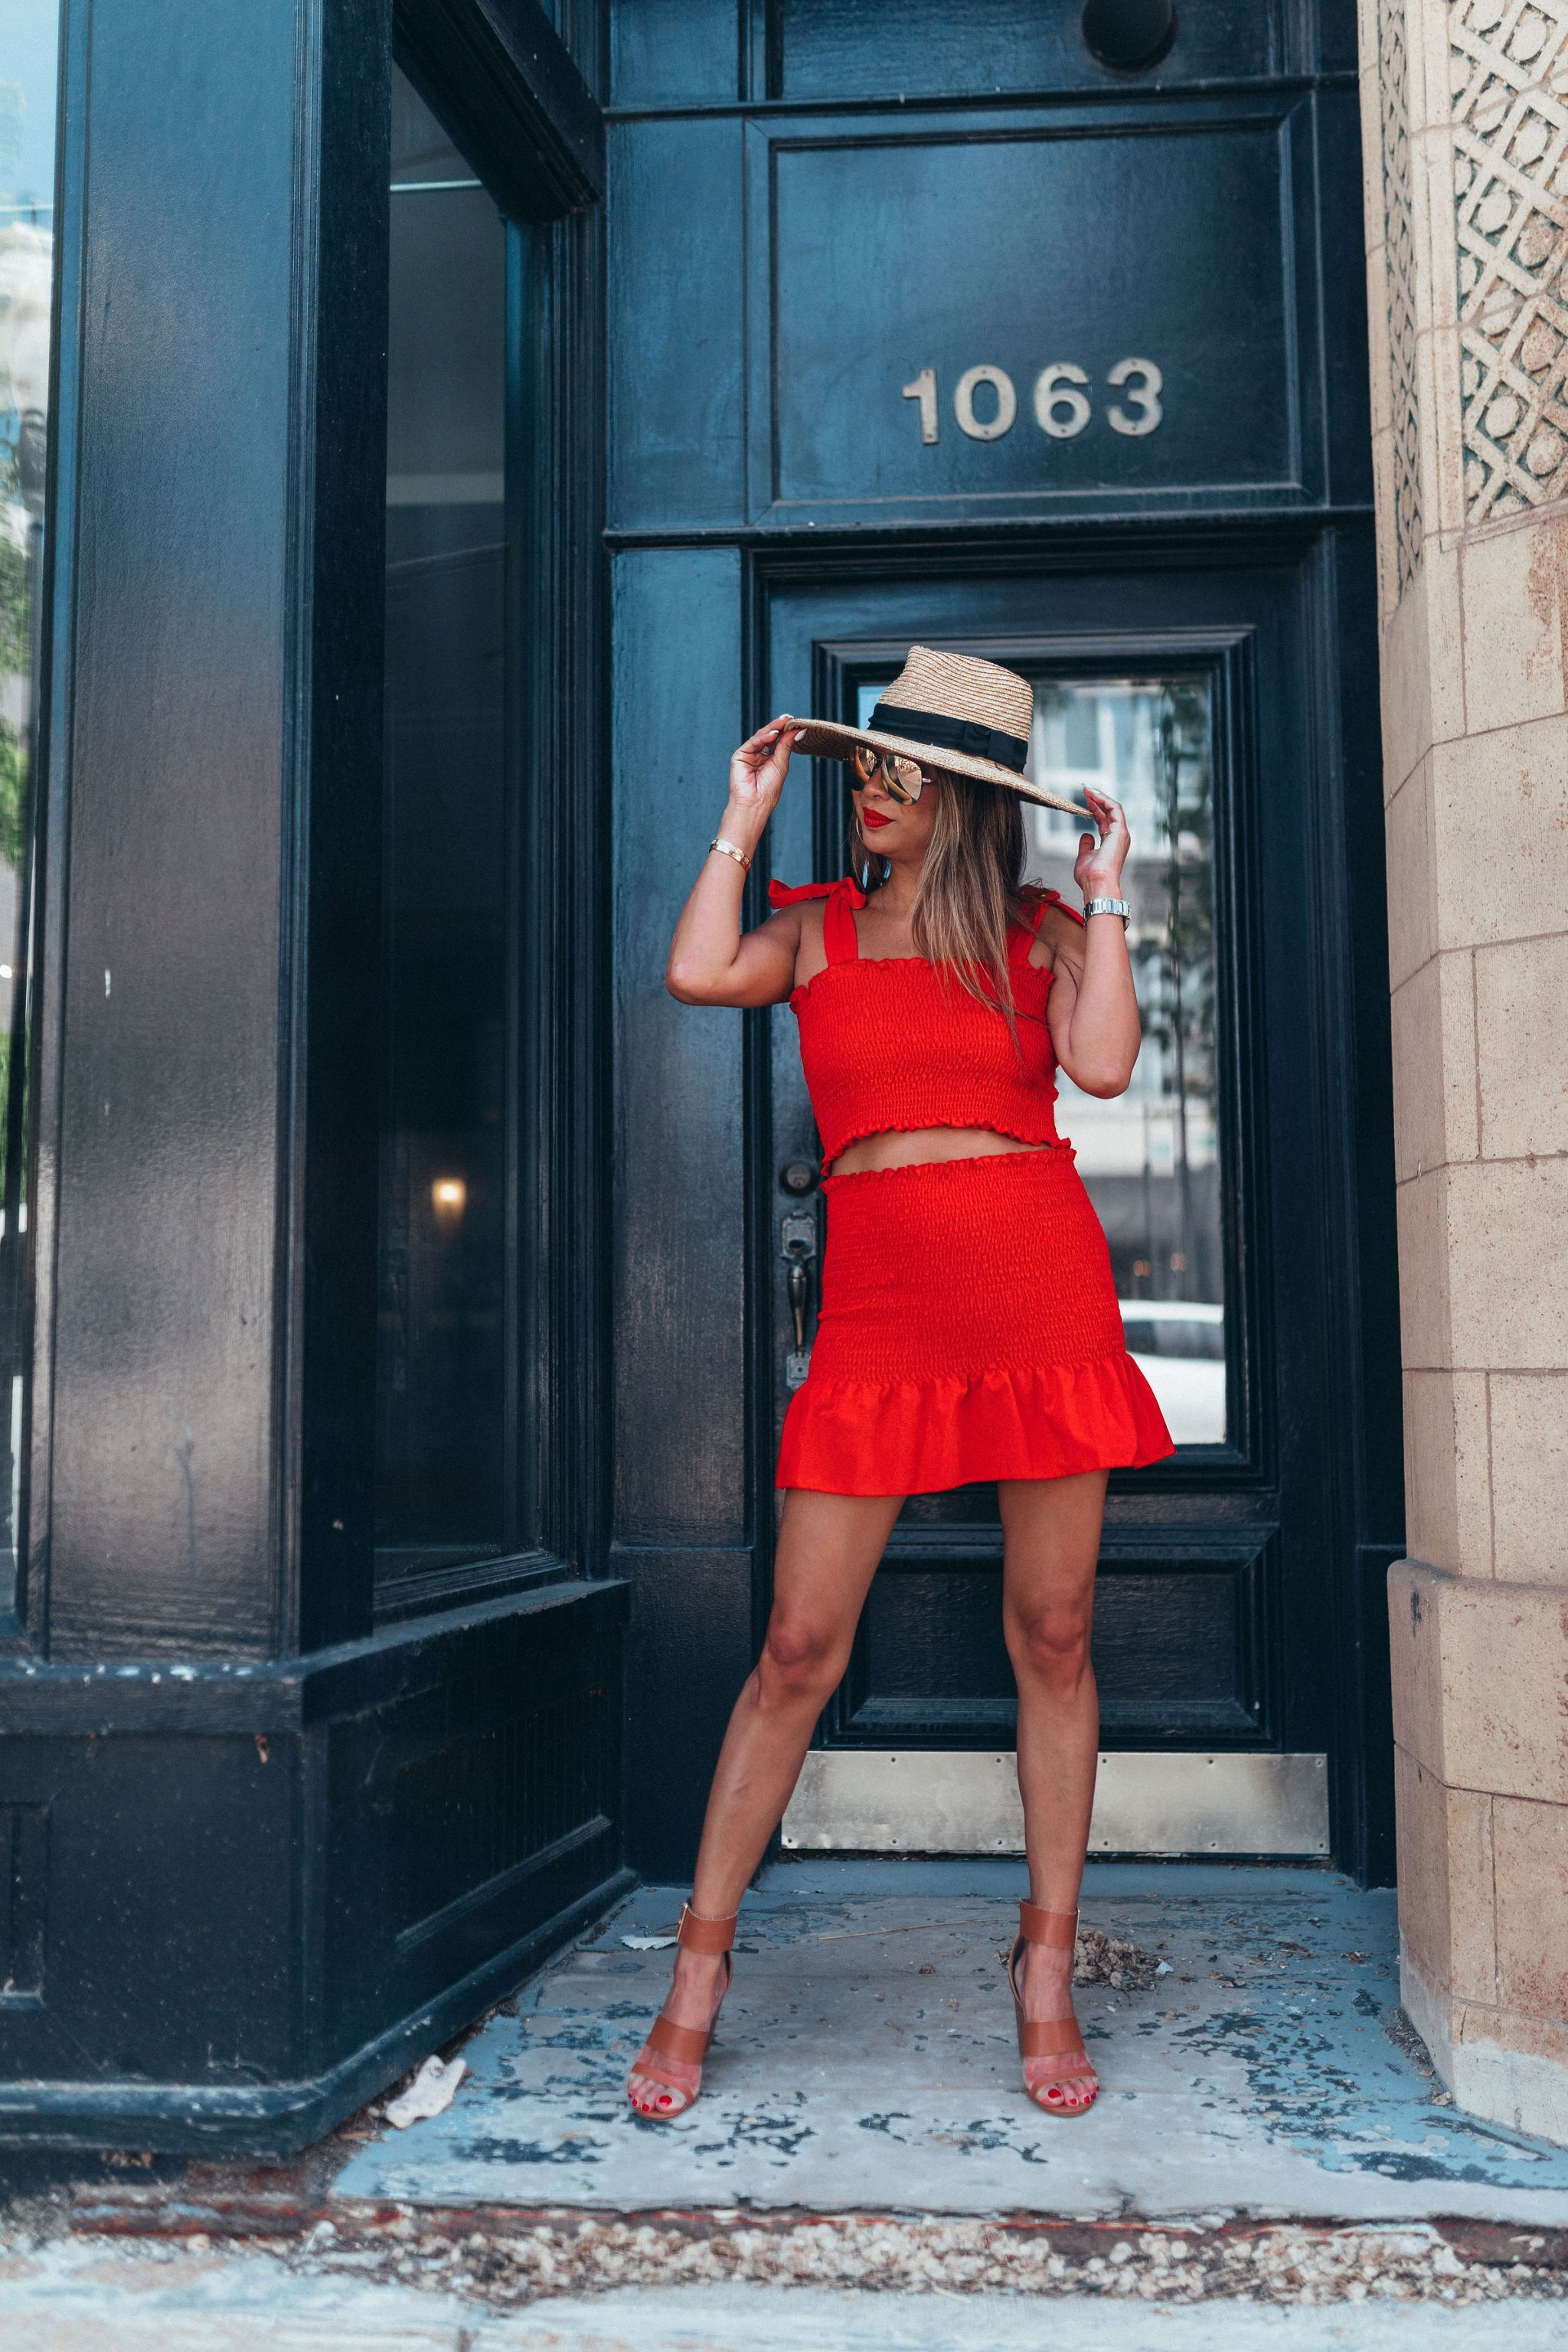 Amazon 2 piece outfit set, summer fashion finds for a steal, chicago summer style, best fashion finds amazon, jennifer worman, chicago lifestyle blogger, summer fashion for a steal, smocked skirt, smocked top, brixton hat, amazon fashion finds